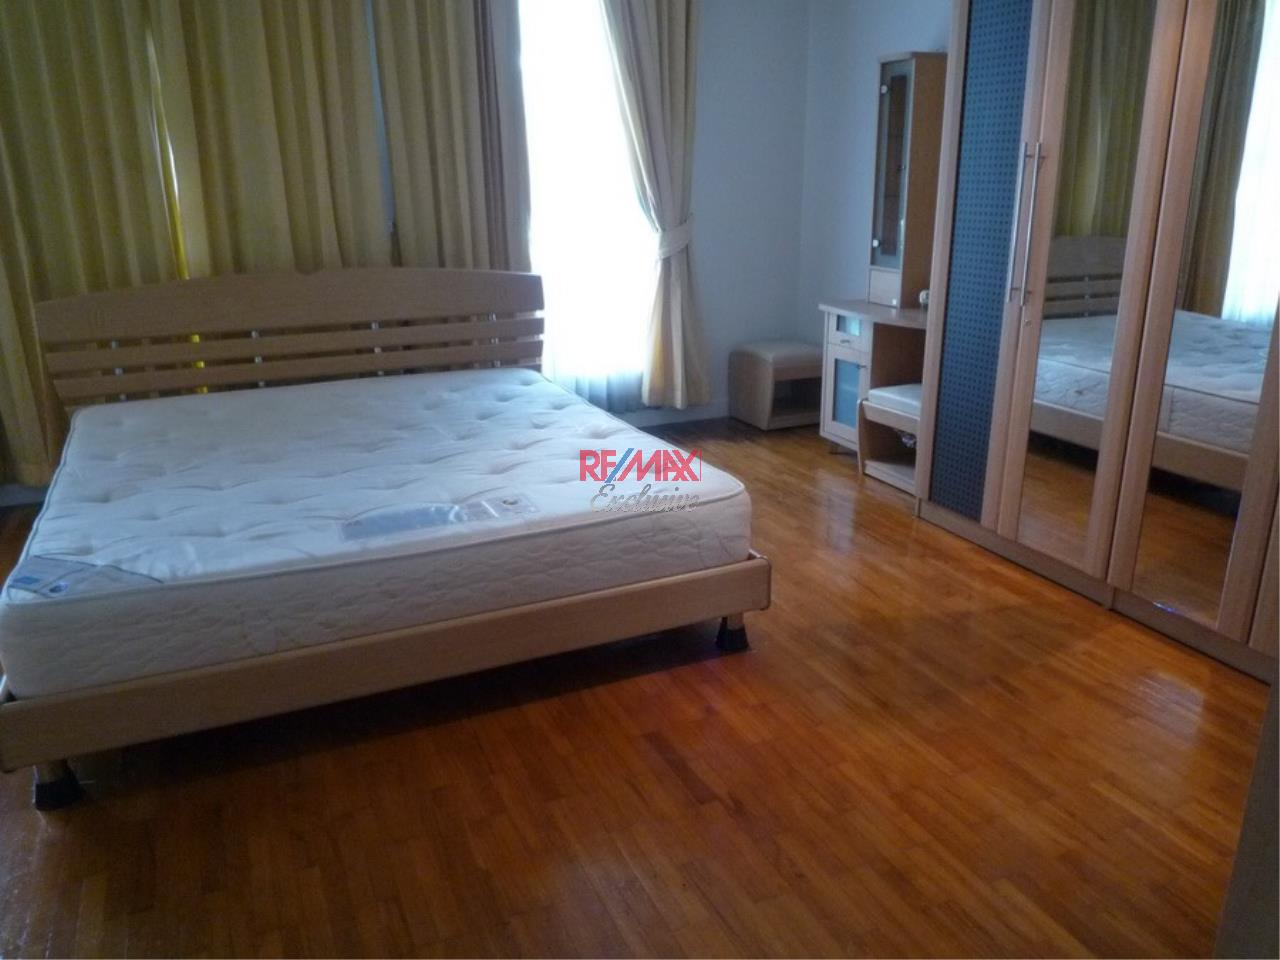 RE/MAX Exclusive Agency's Baan Klang Krung Thonglor 4 Bedrooms, 350 SQM., For Rent! 7